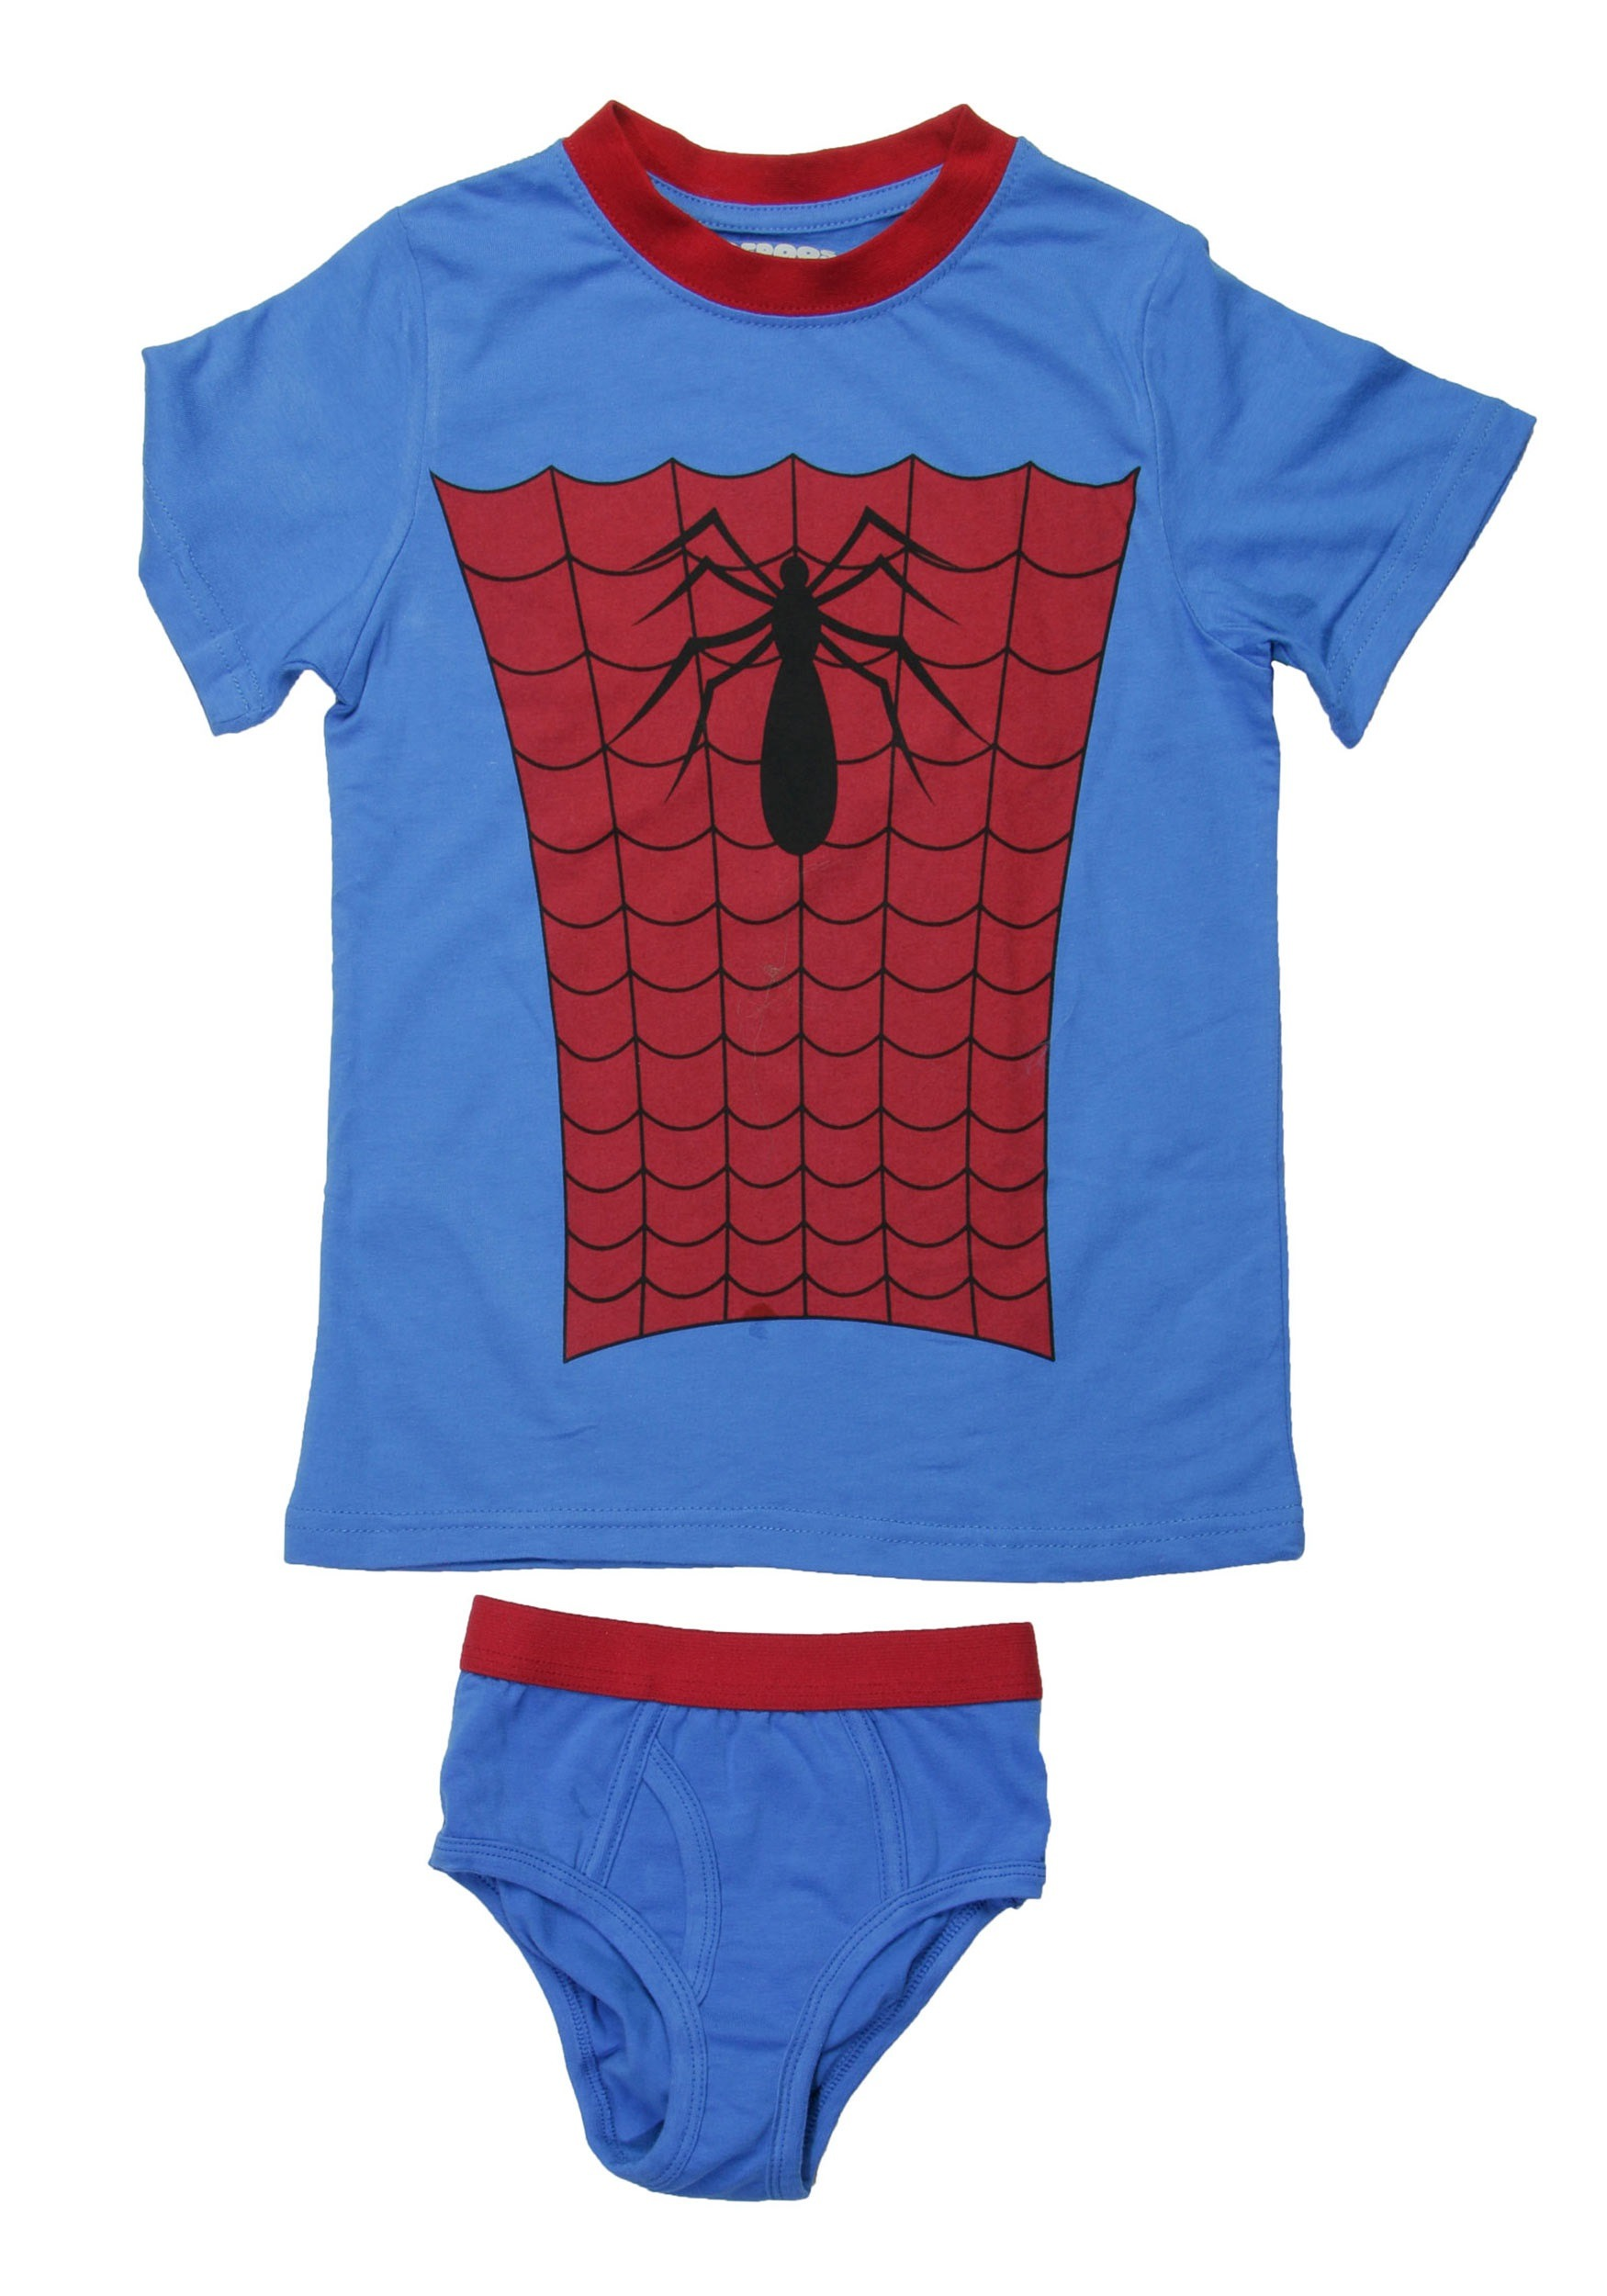 Spider-Man Boy's Underoos Brief Set BWZE25FJMVL01PP00